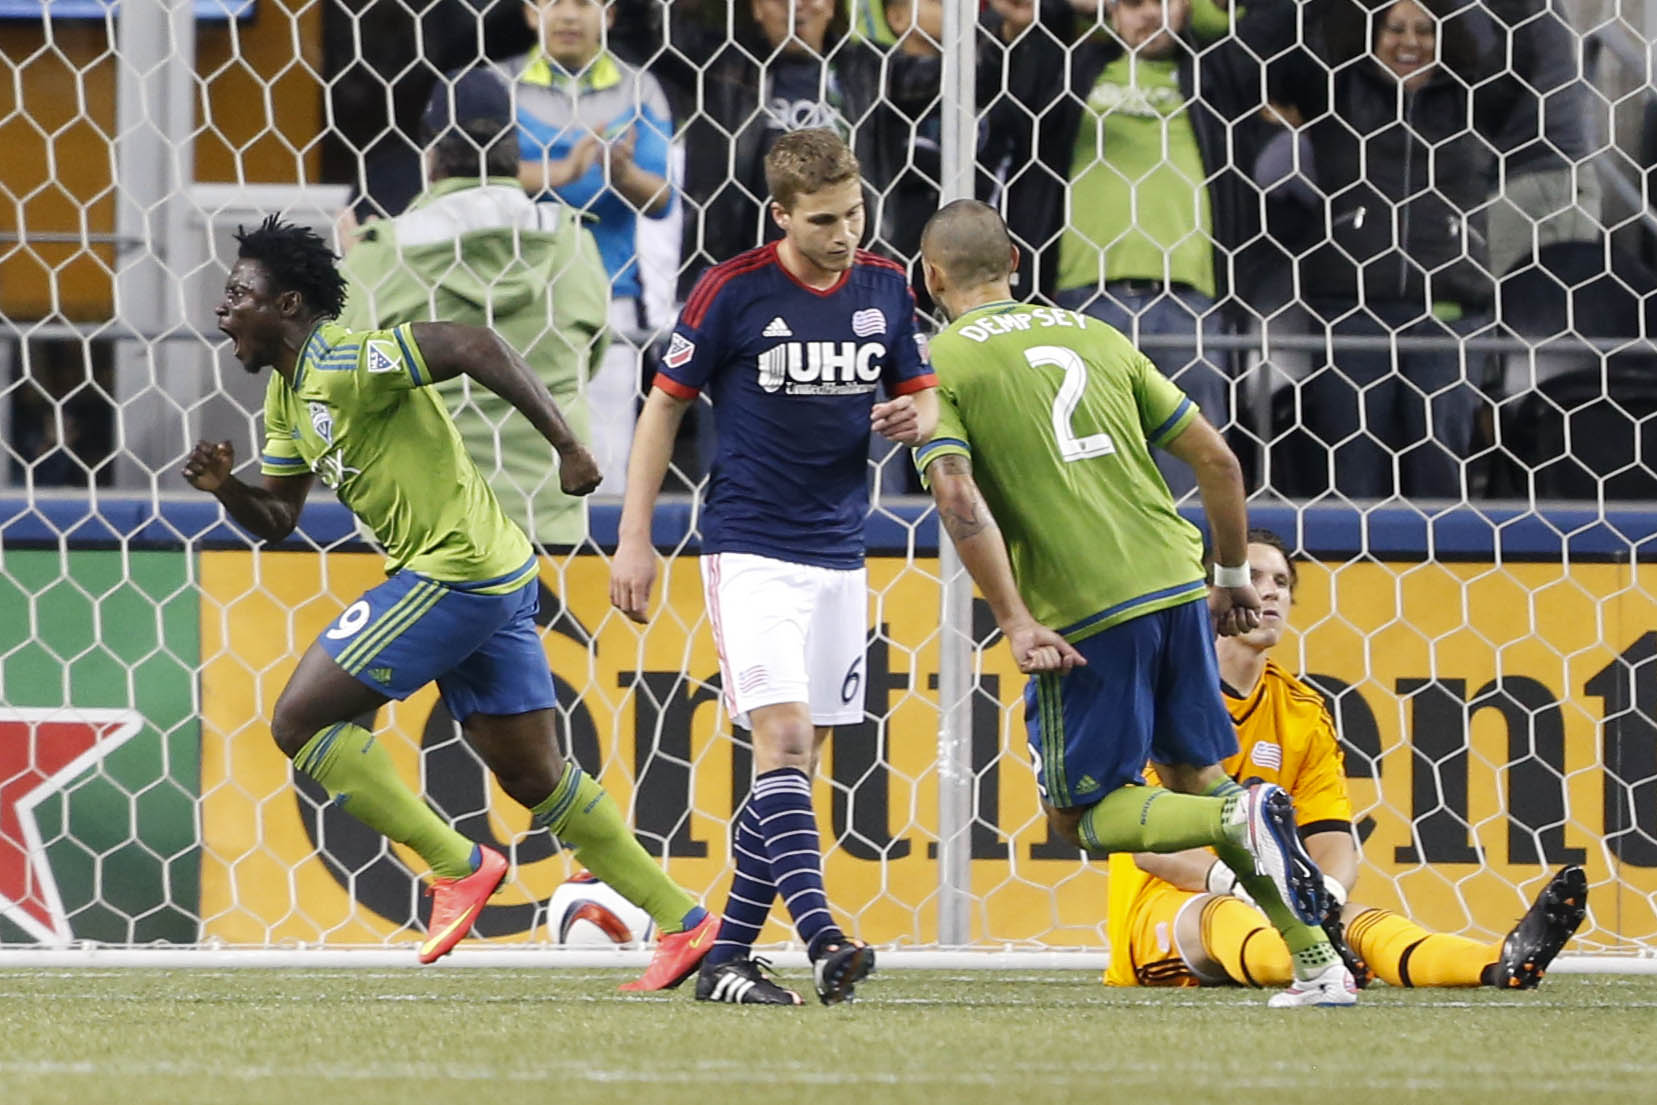 Seattle's Clint Dempsey and forward Obafemi Martins led the charge for the Sounders and MLS Fantasy in round one.